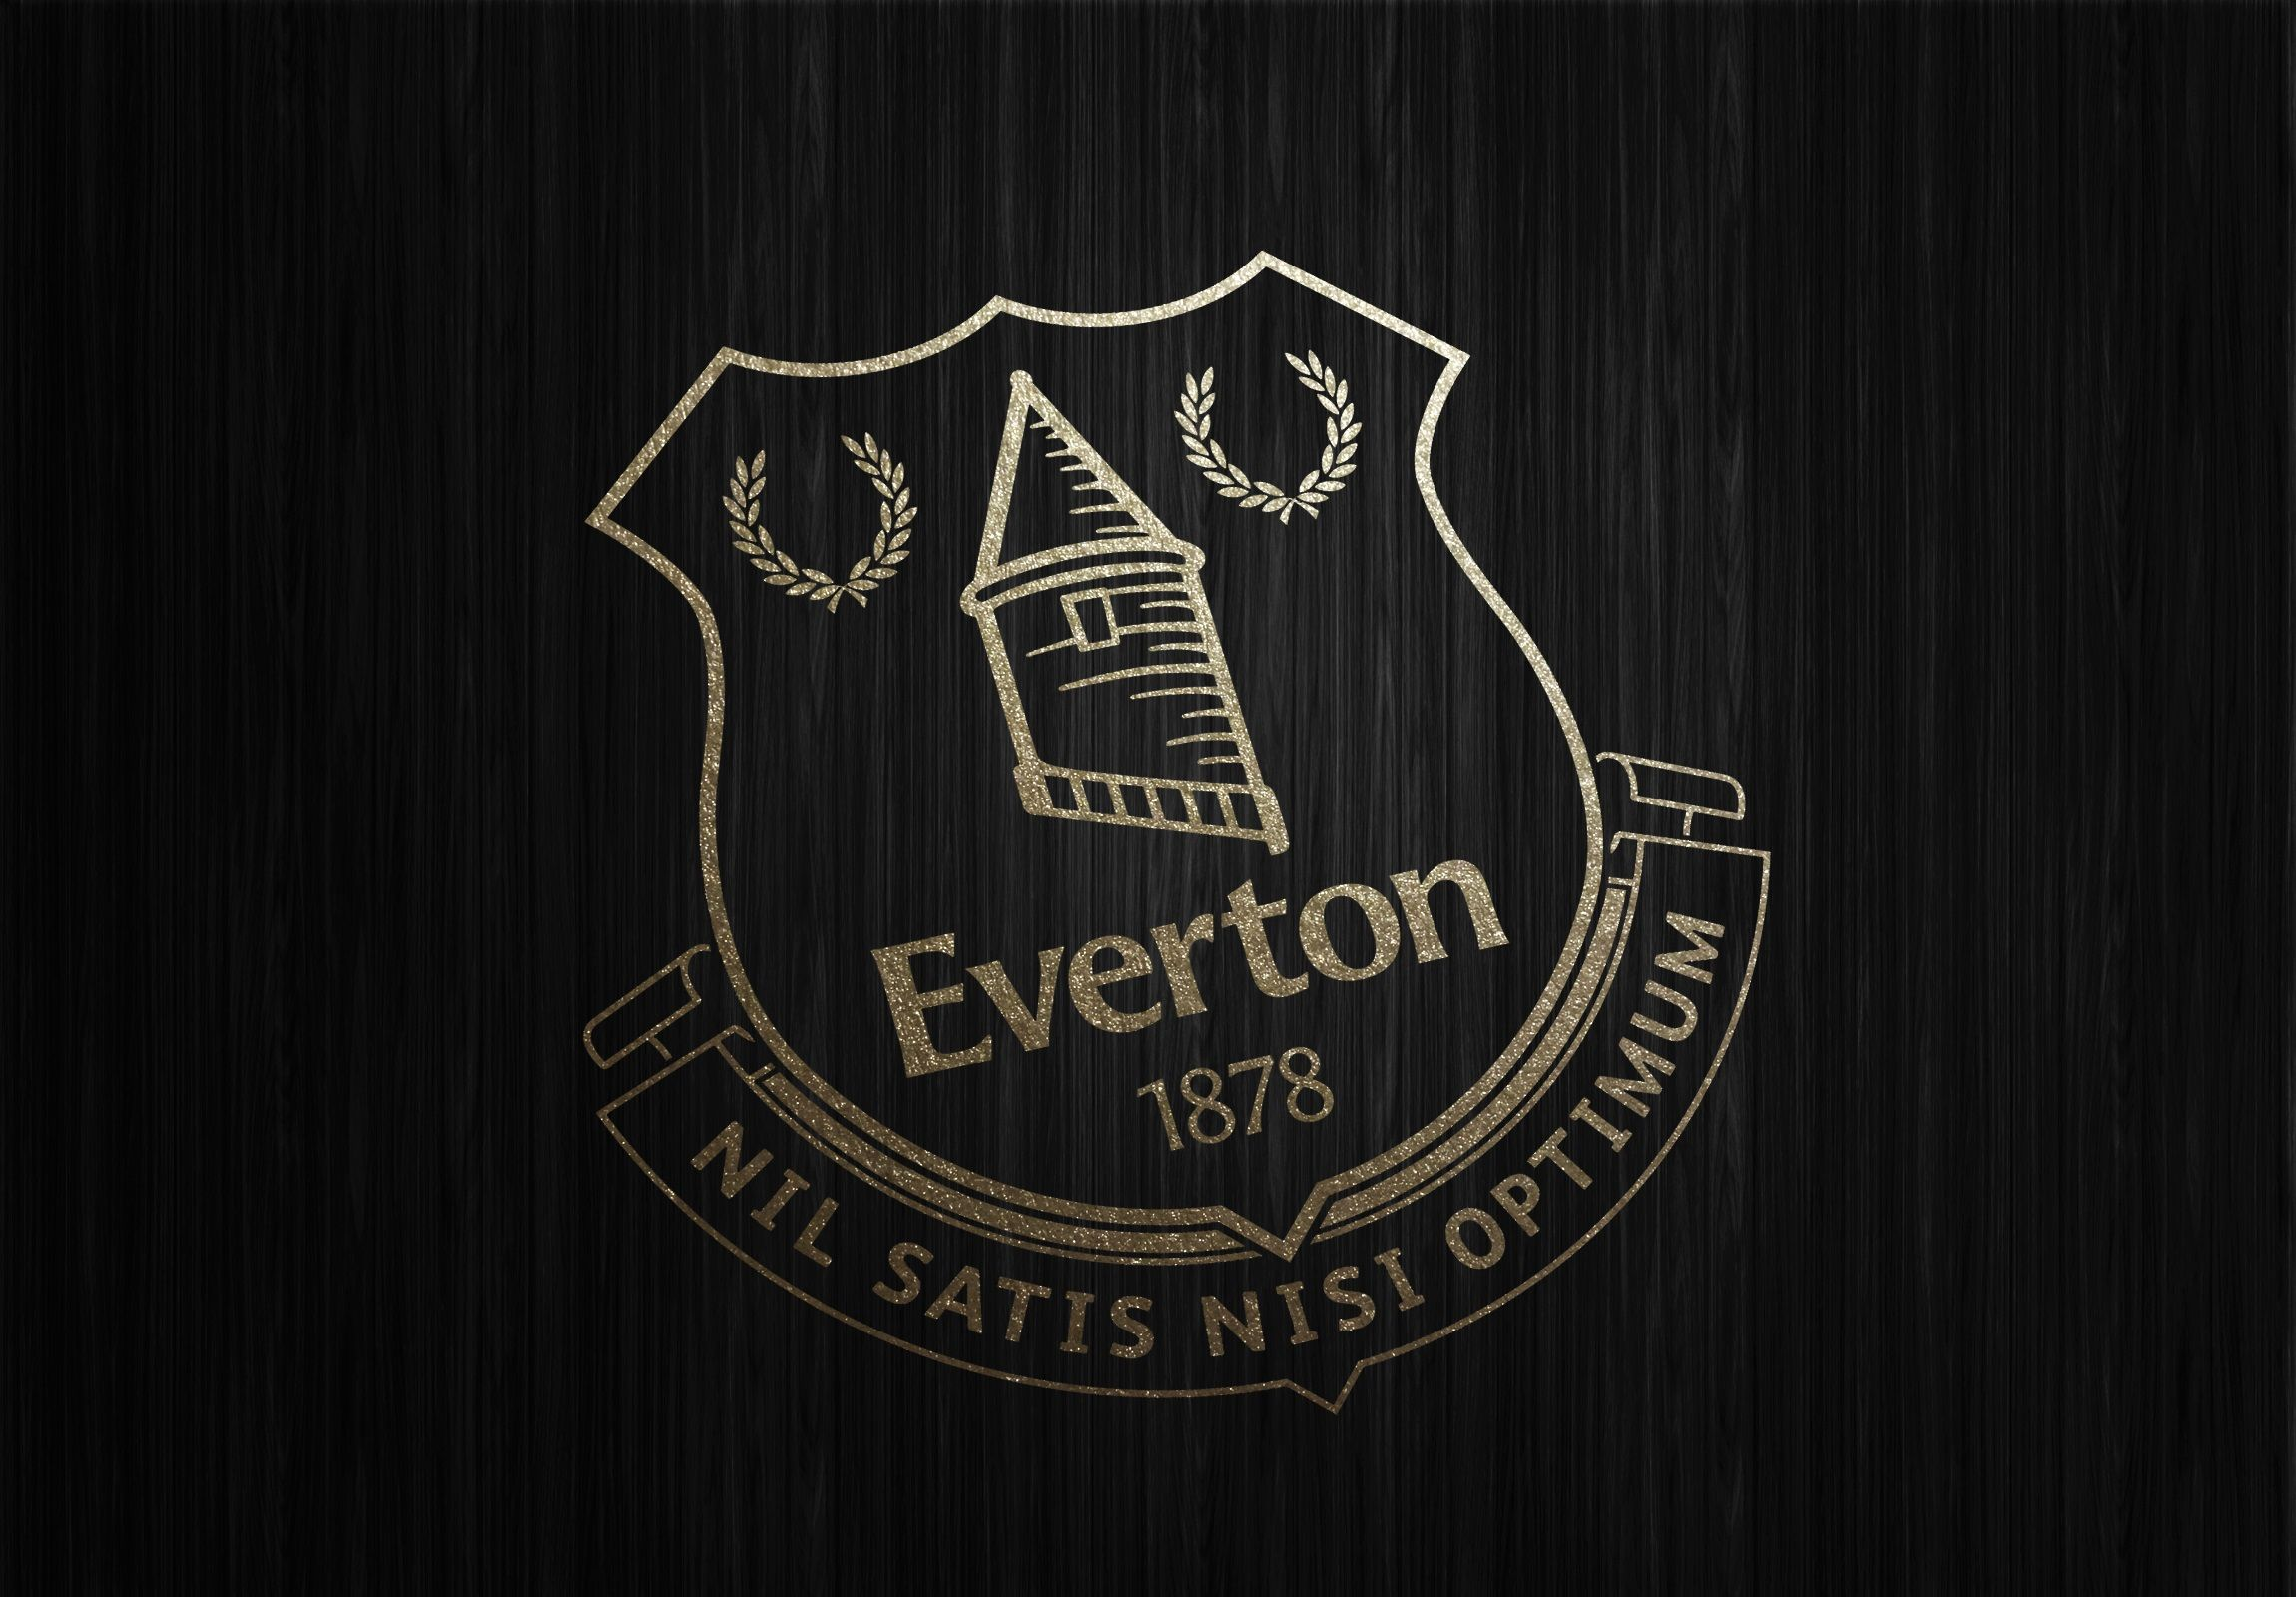 Everton Gold Wallpaper HD Everton Everton fc wallpaper 2300x1600